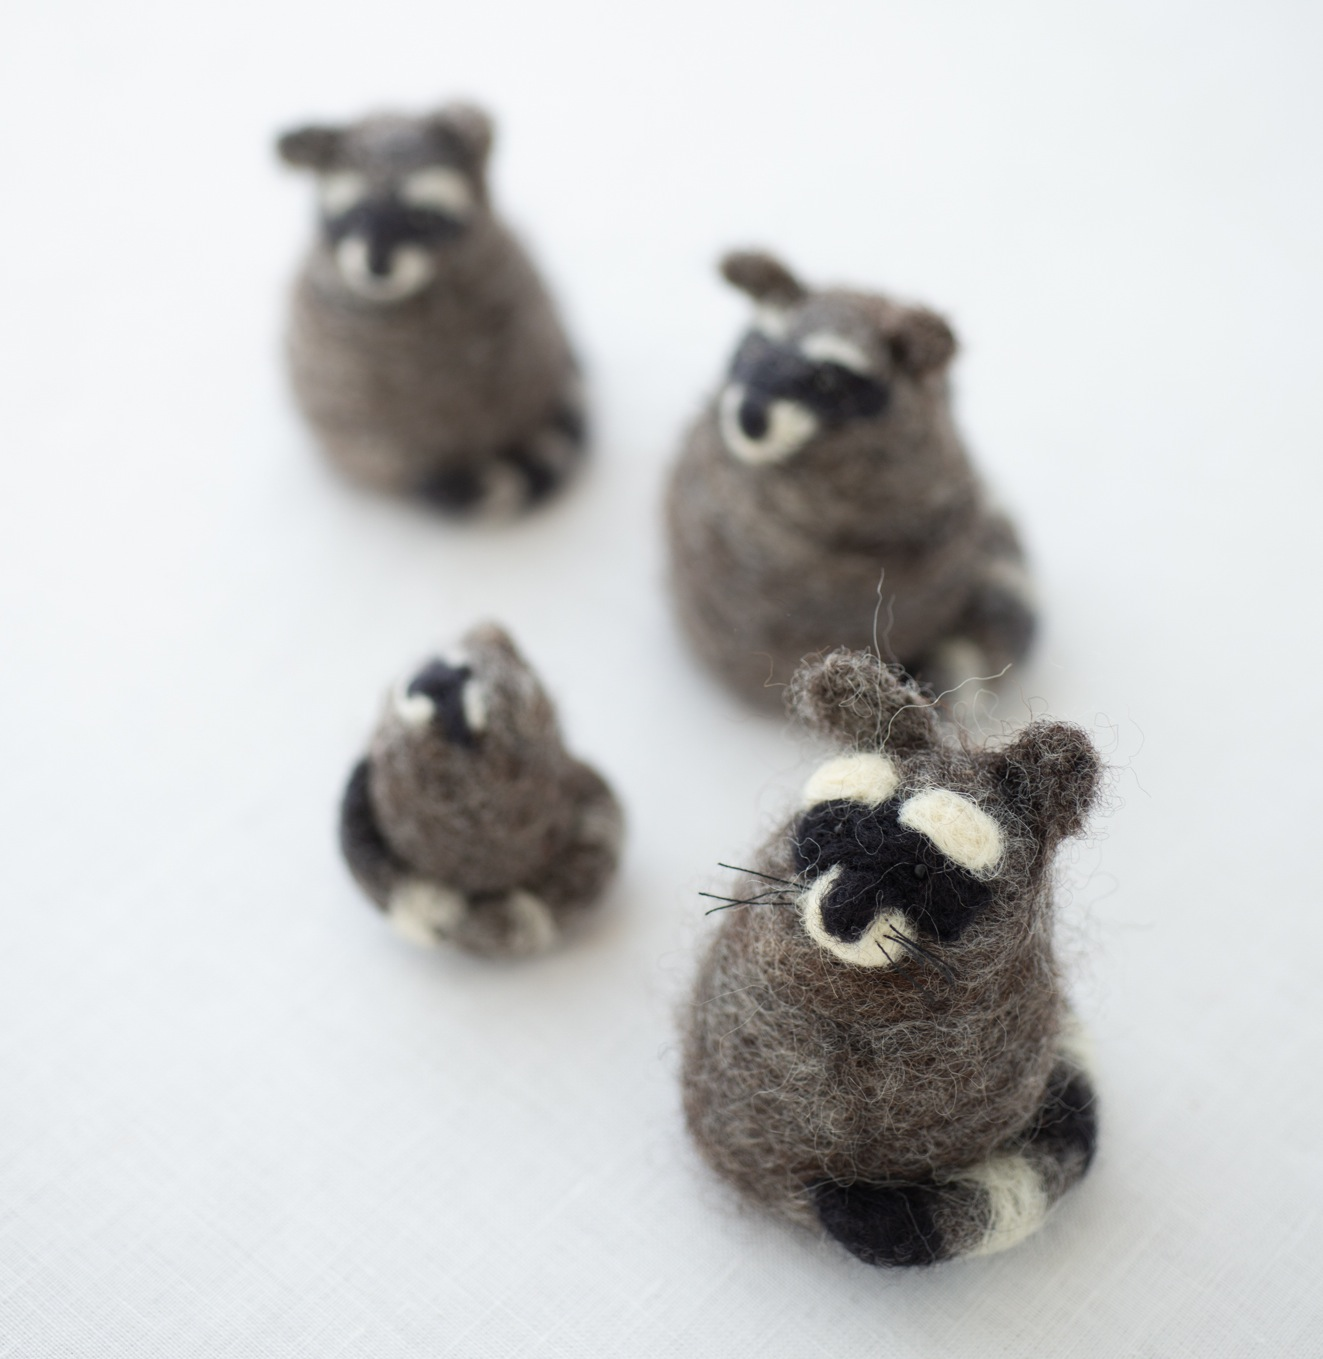 Mother/'s Day Felting Supplies Rabbit and Raccoon on Rope Needle Felting Kits